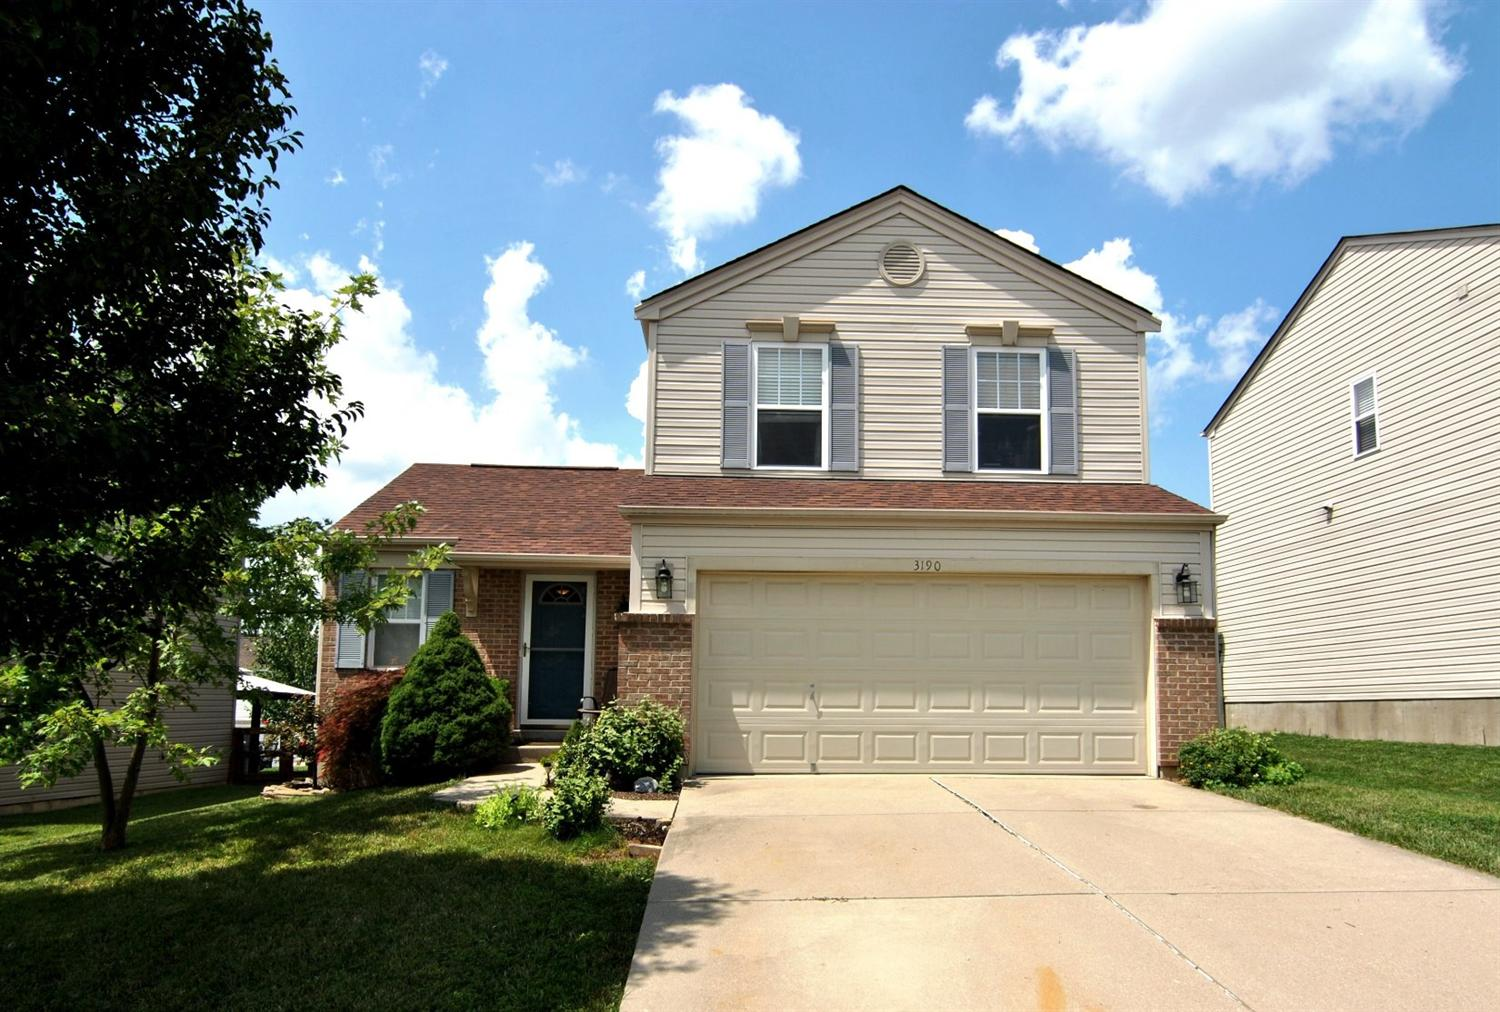 Photo 1 for 3190 Meadoway Ct Independence, KY 41051